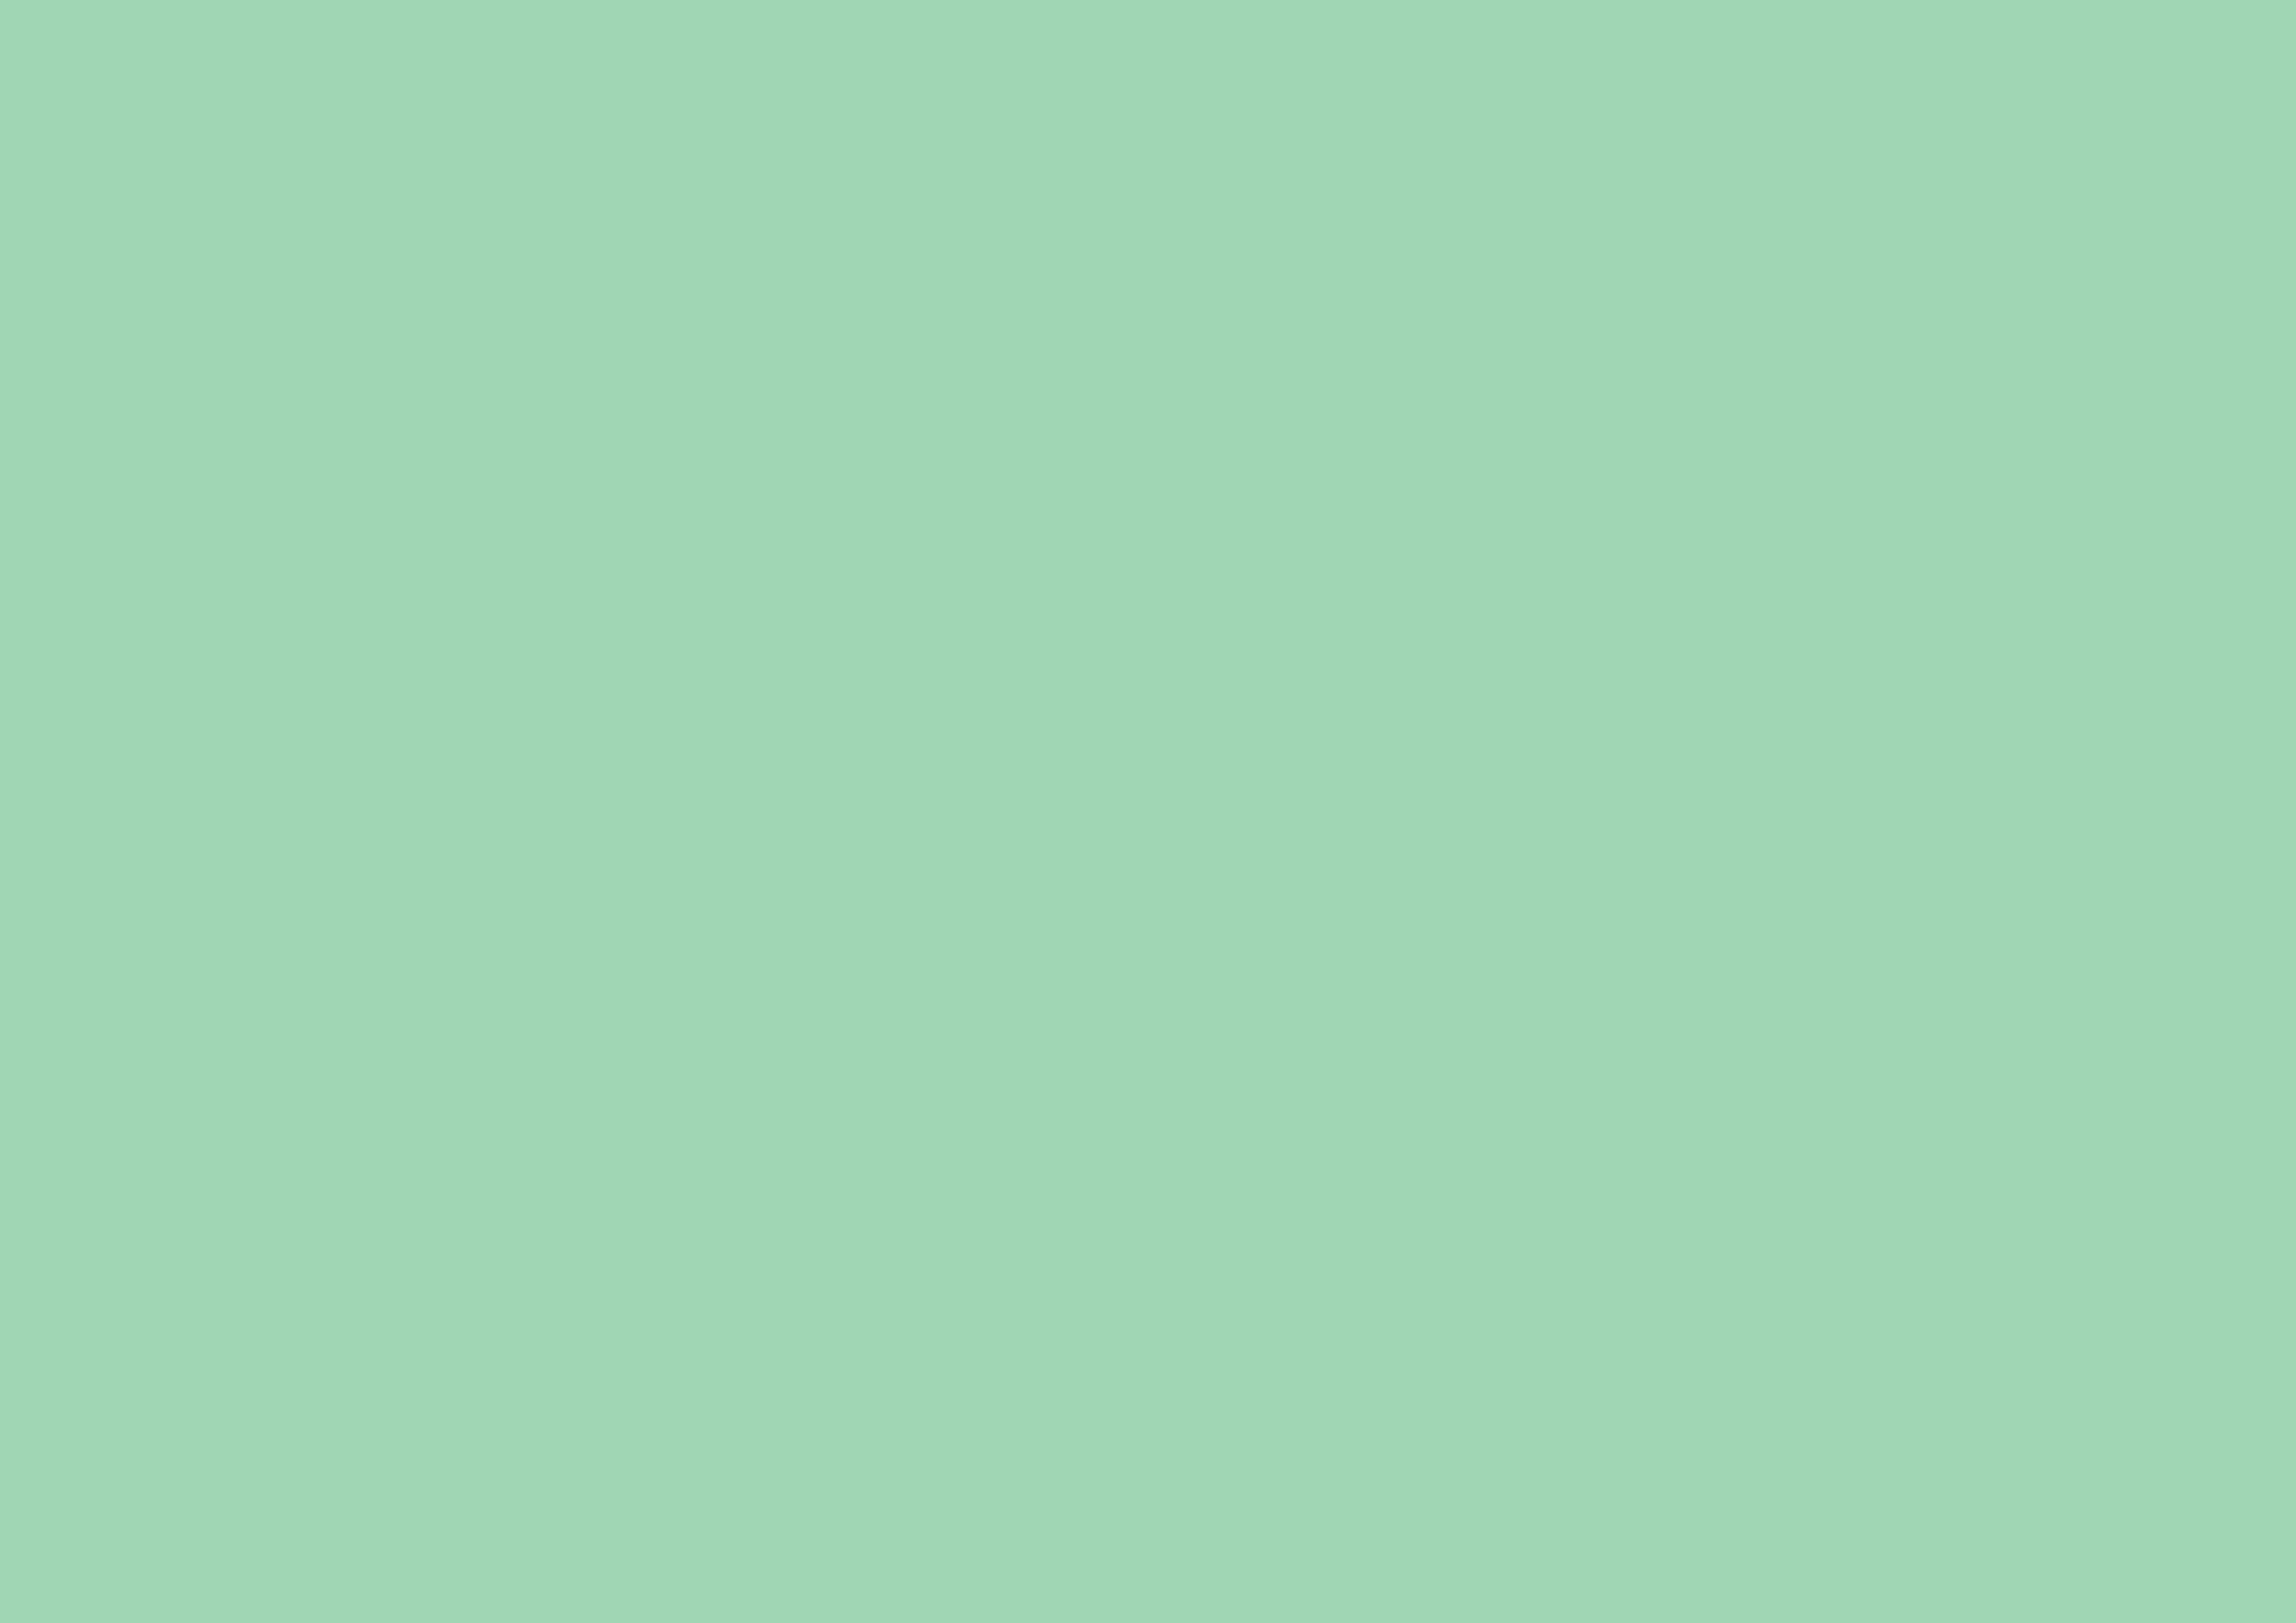 3508x2480 Turquoise Green Solid Color Background